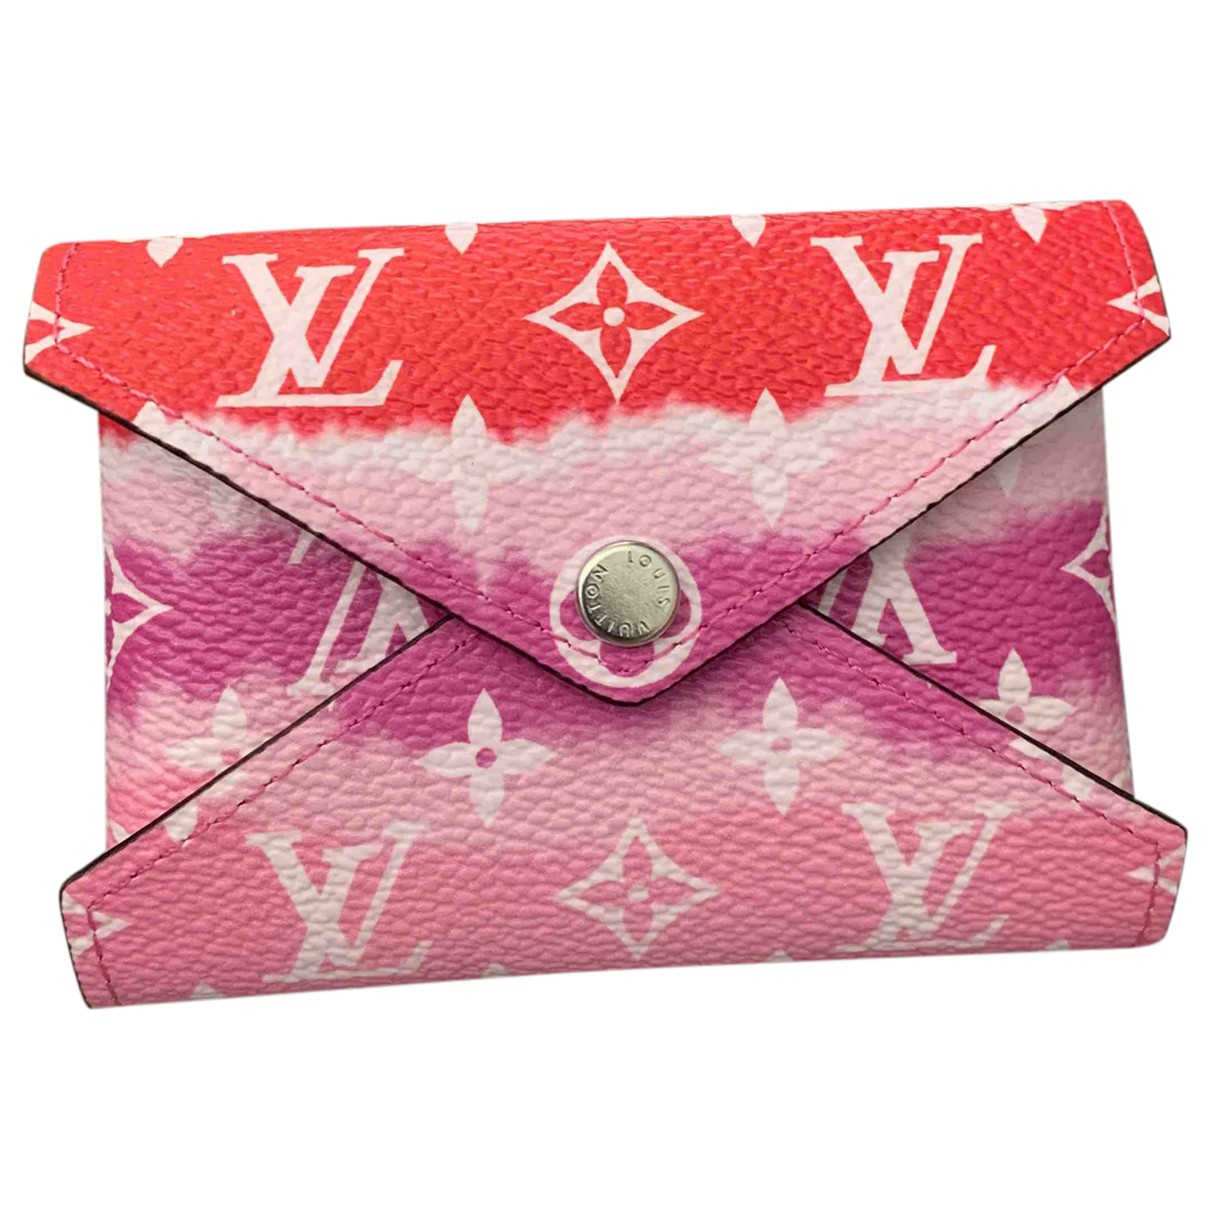 Louis Vuitton Kirigami Pink Cloth Purses, wallet & cases for Women \N